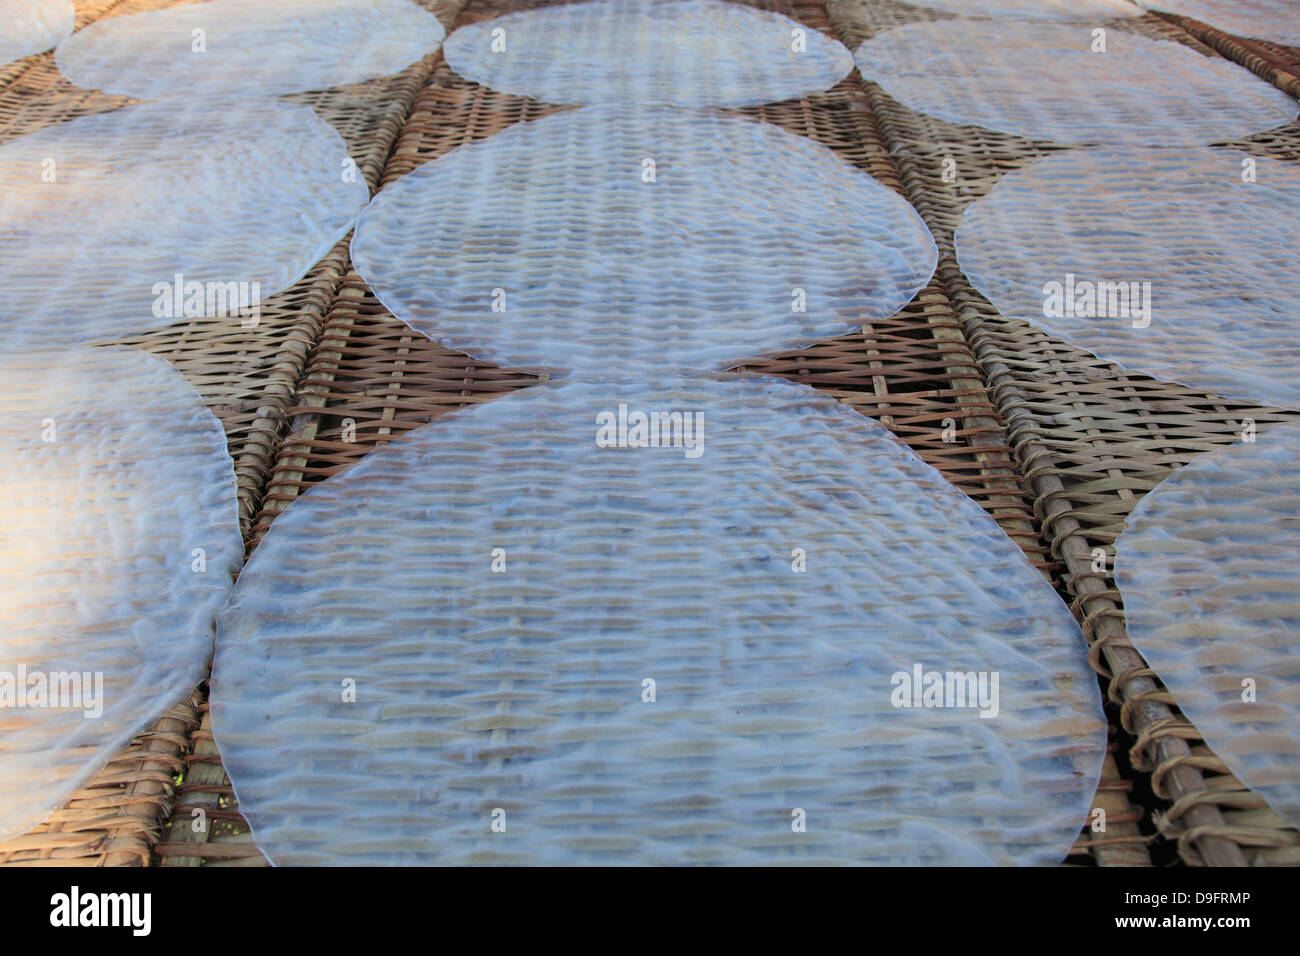 Rice paper crepes drying, Rice Noodle Factory, Mekong Delta, Can Tho Province, Vietnam, Indochina, Southeast Asia - Stock Image